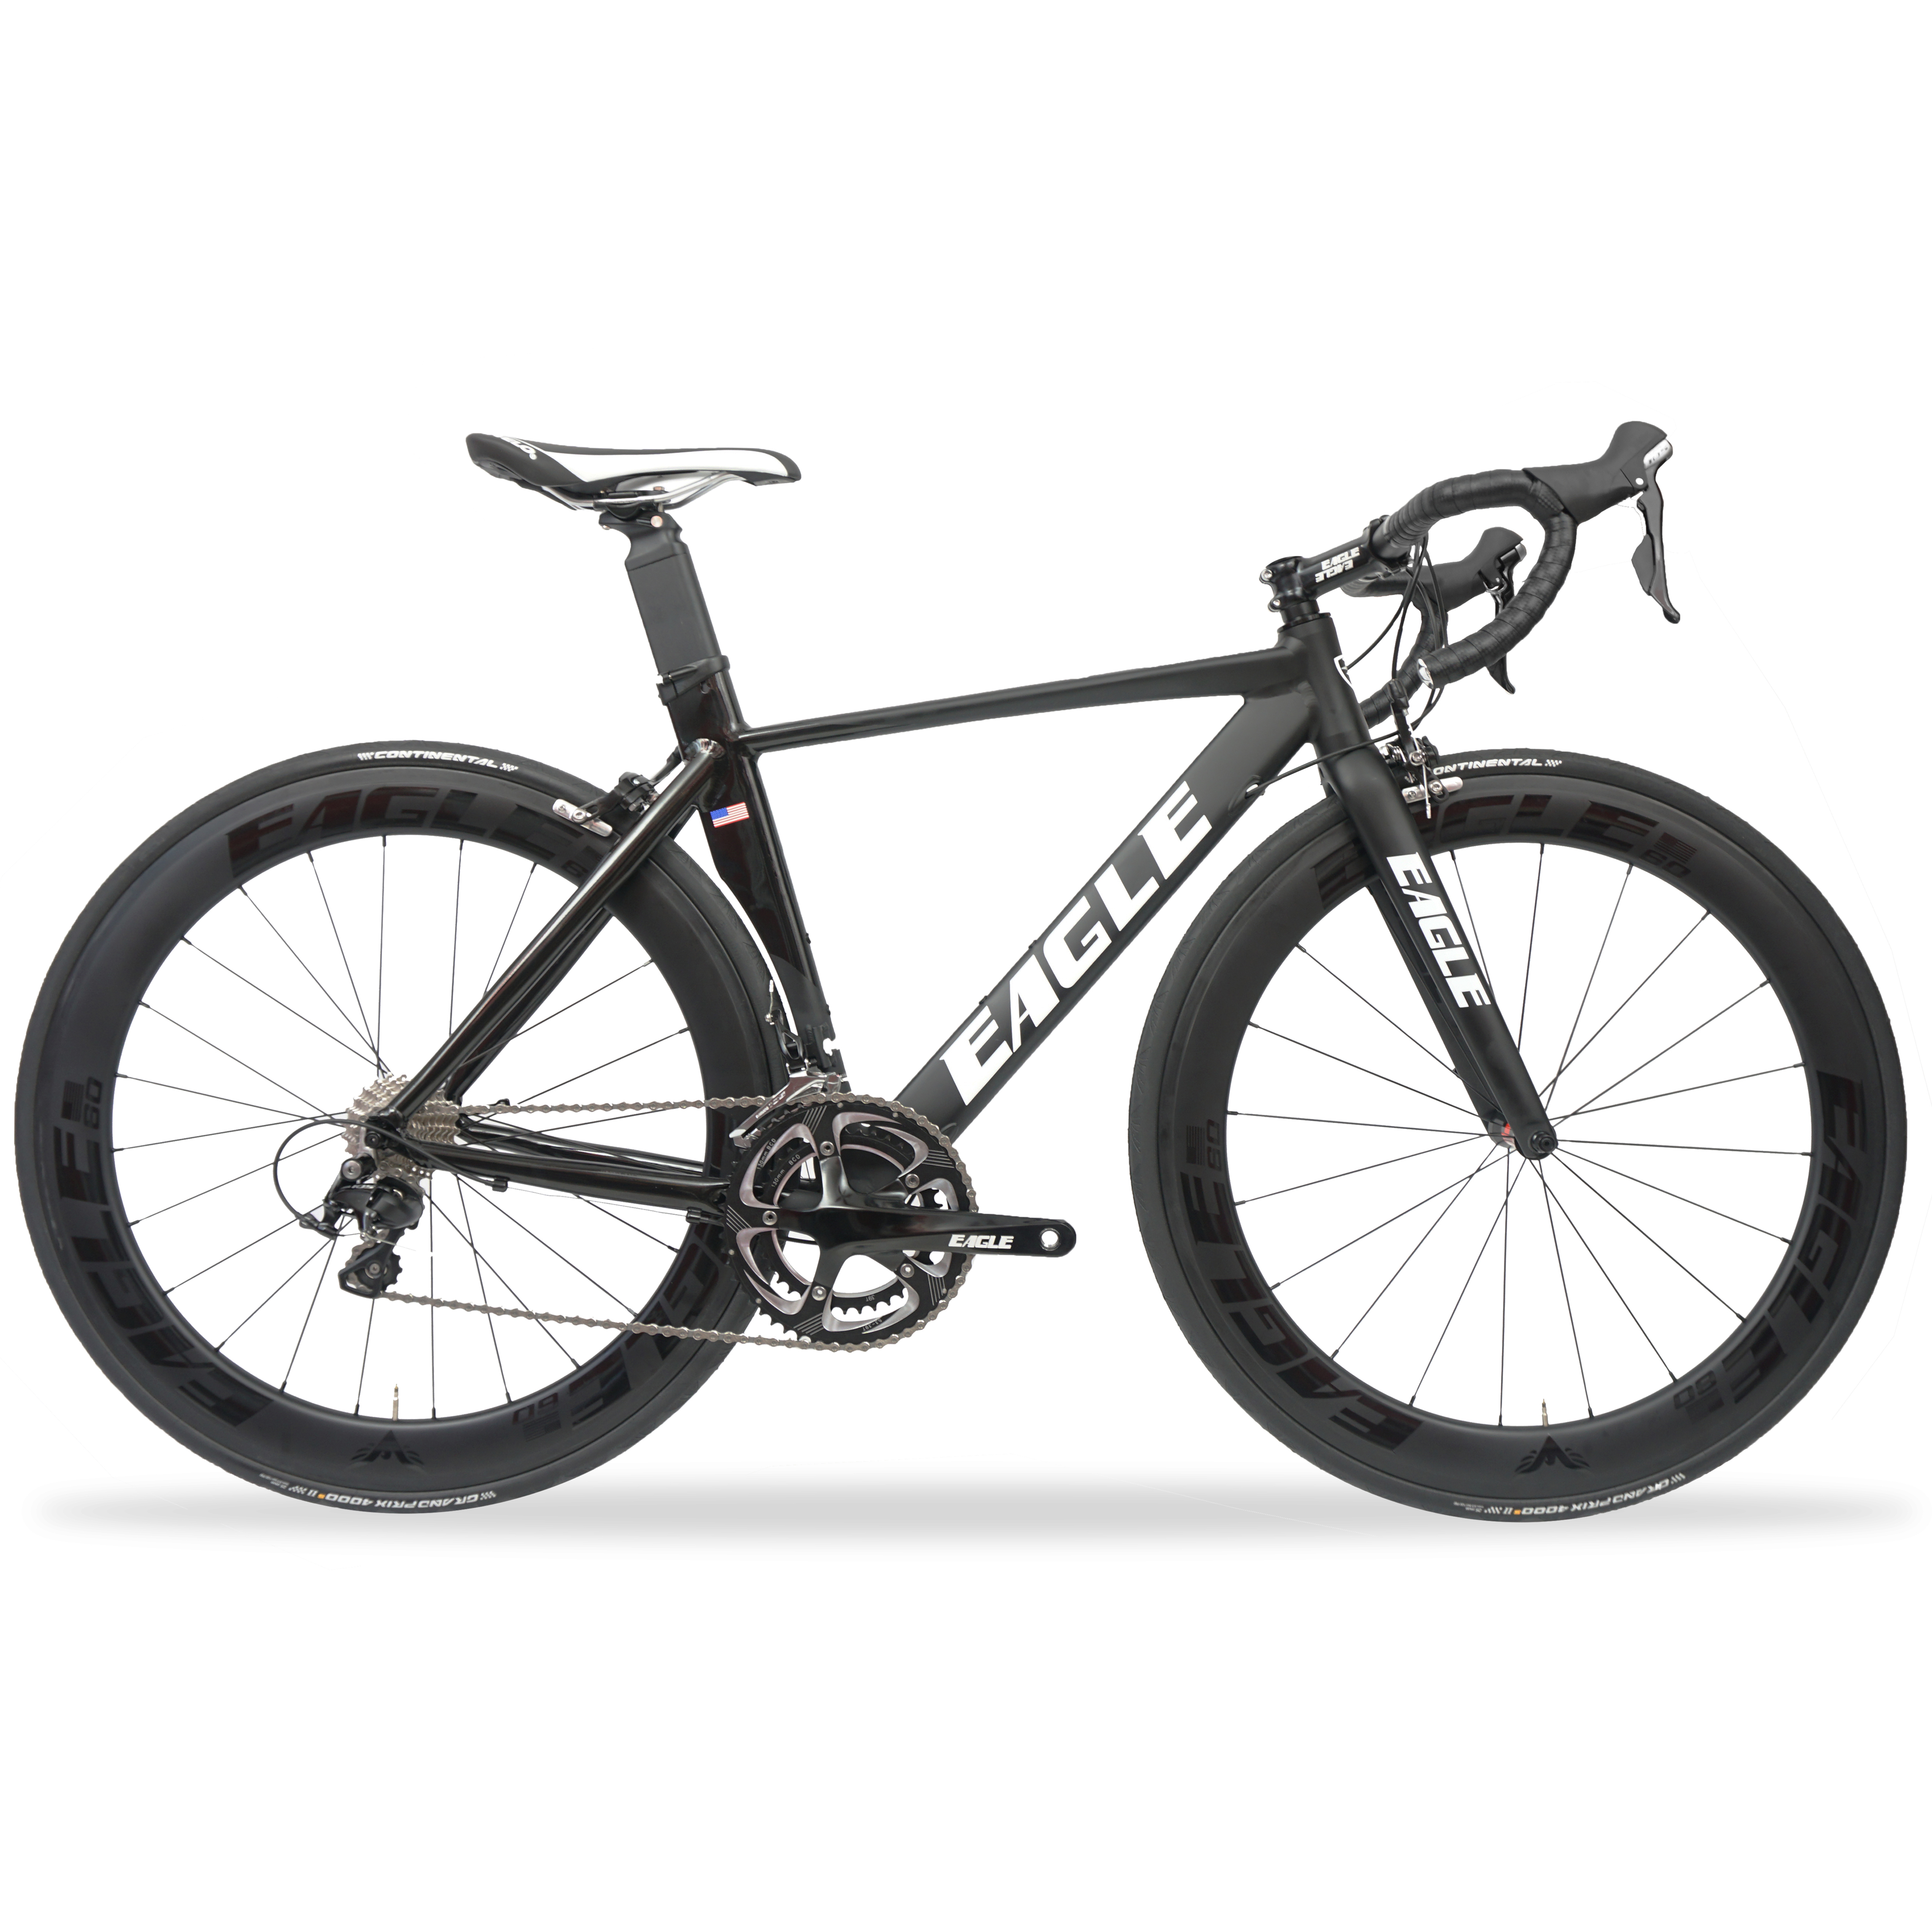 Eagle AZ1 Pro Alloy Aero Road Bike with Carbon Wheelset